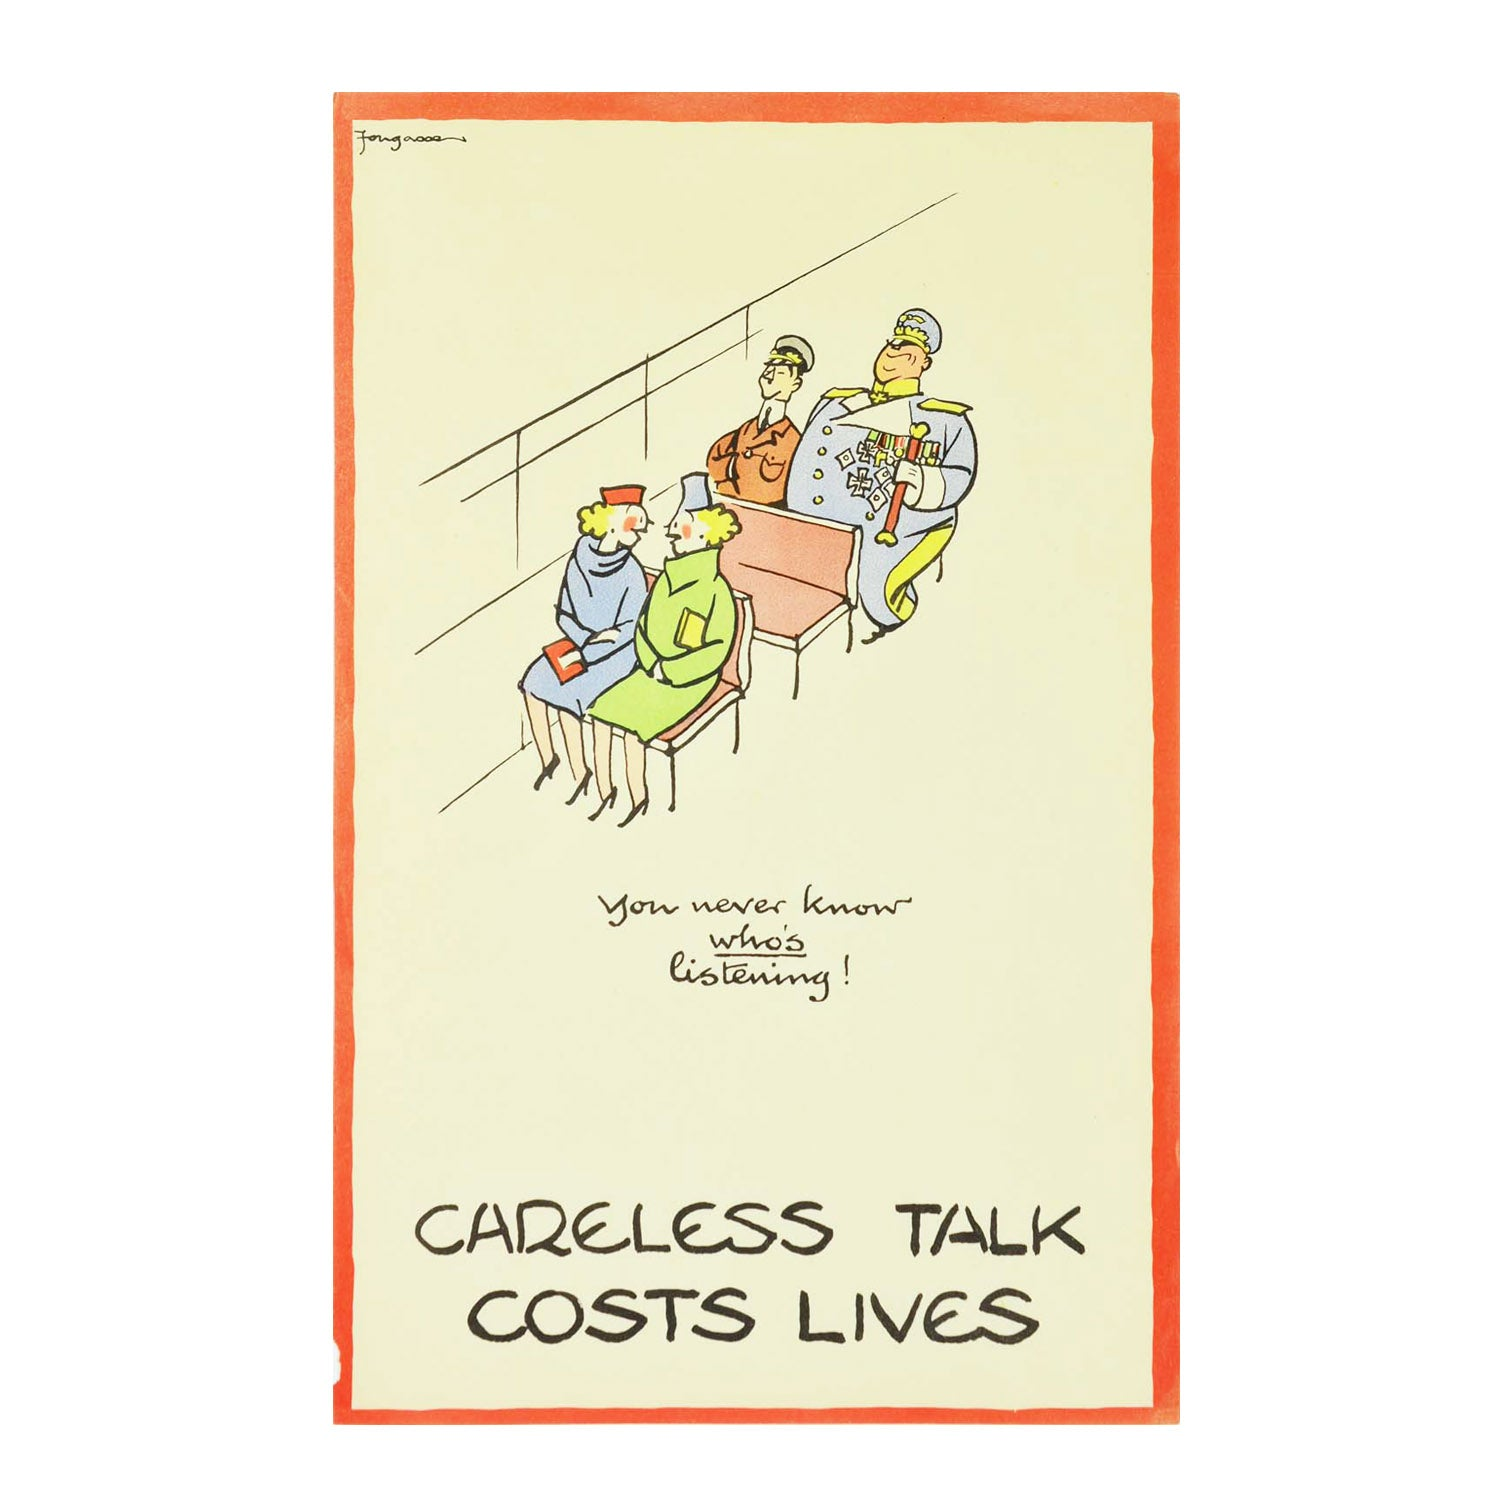 Original Fougsse Careless Talk poster 1940